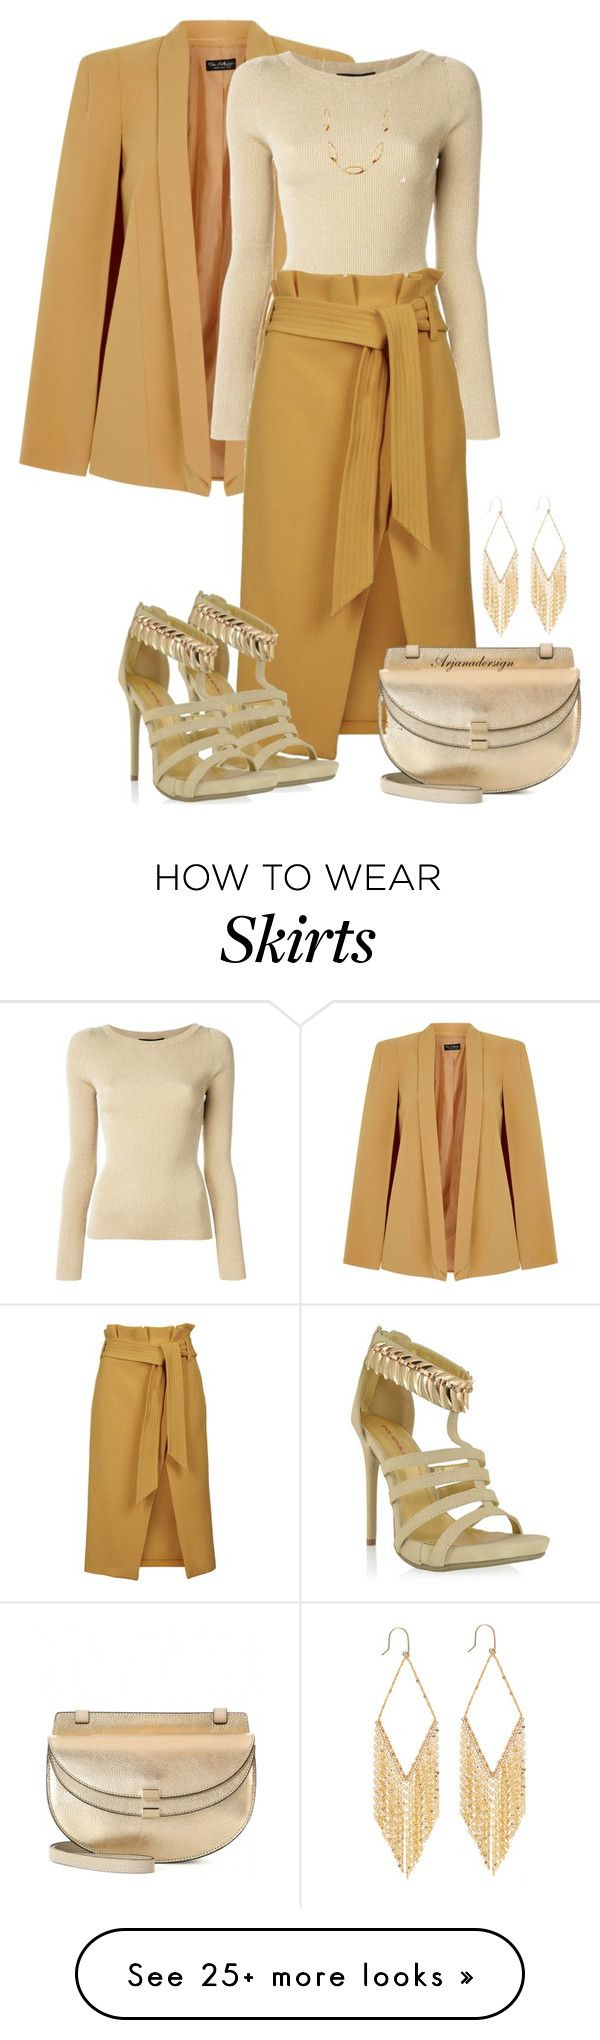 """PAPER BAG MIDI SKIRT"" by arjanadesign on Polyvore featuring Miss Selfridge, Dolce&Gabbana, Topshop, Shoe Republic LA, Chloé and Lana"